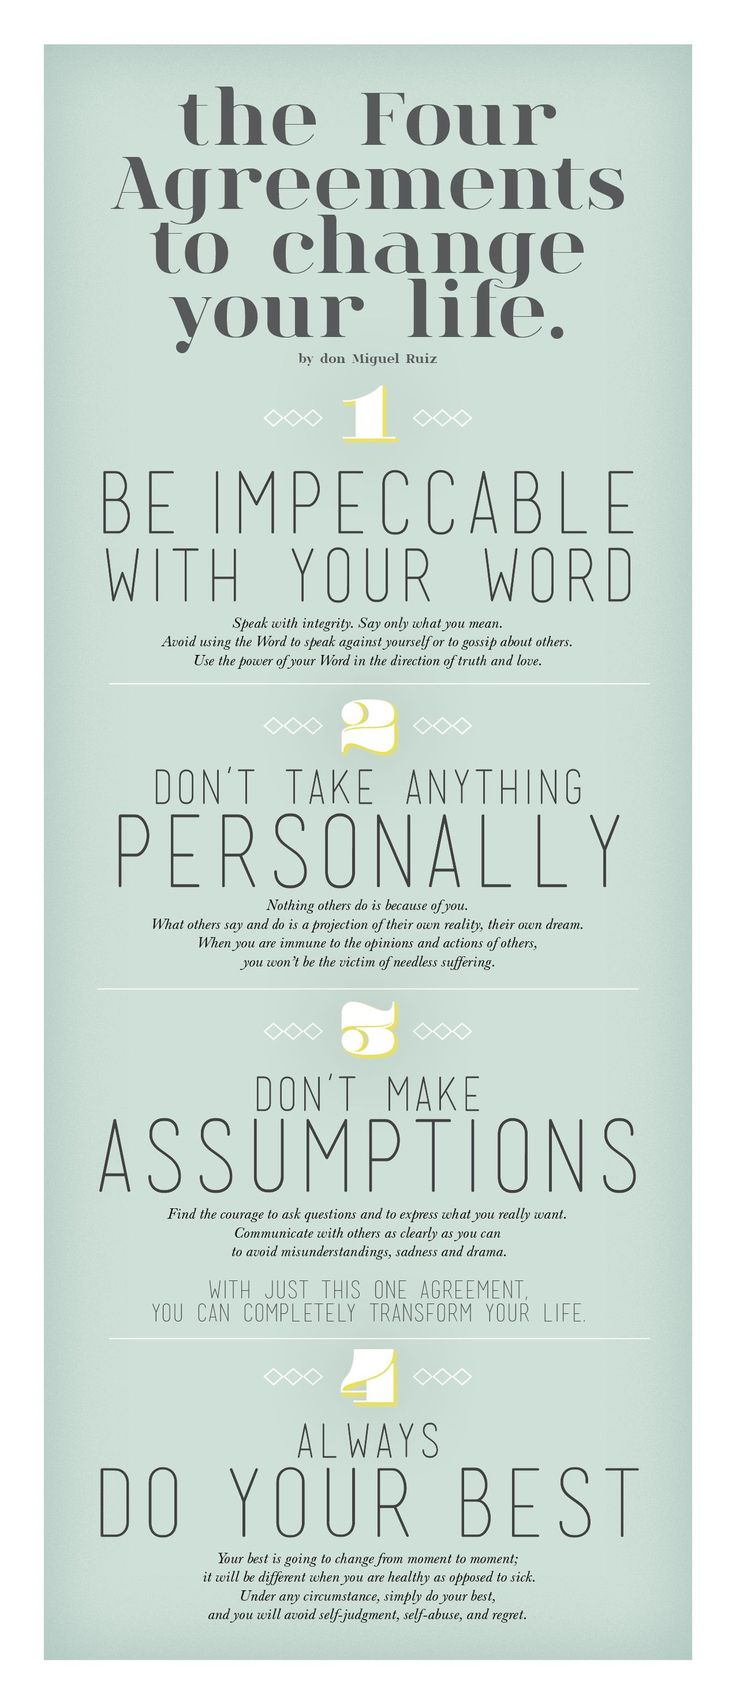 Best Quotes About Strength E Four Agreements To Change Your Life